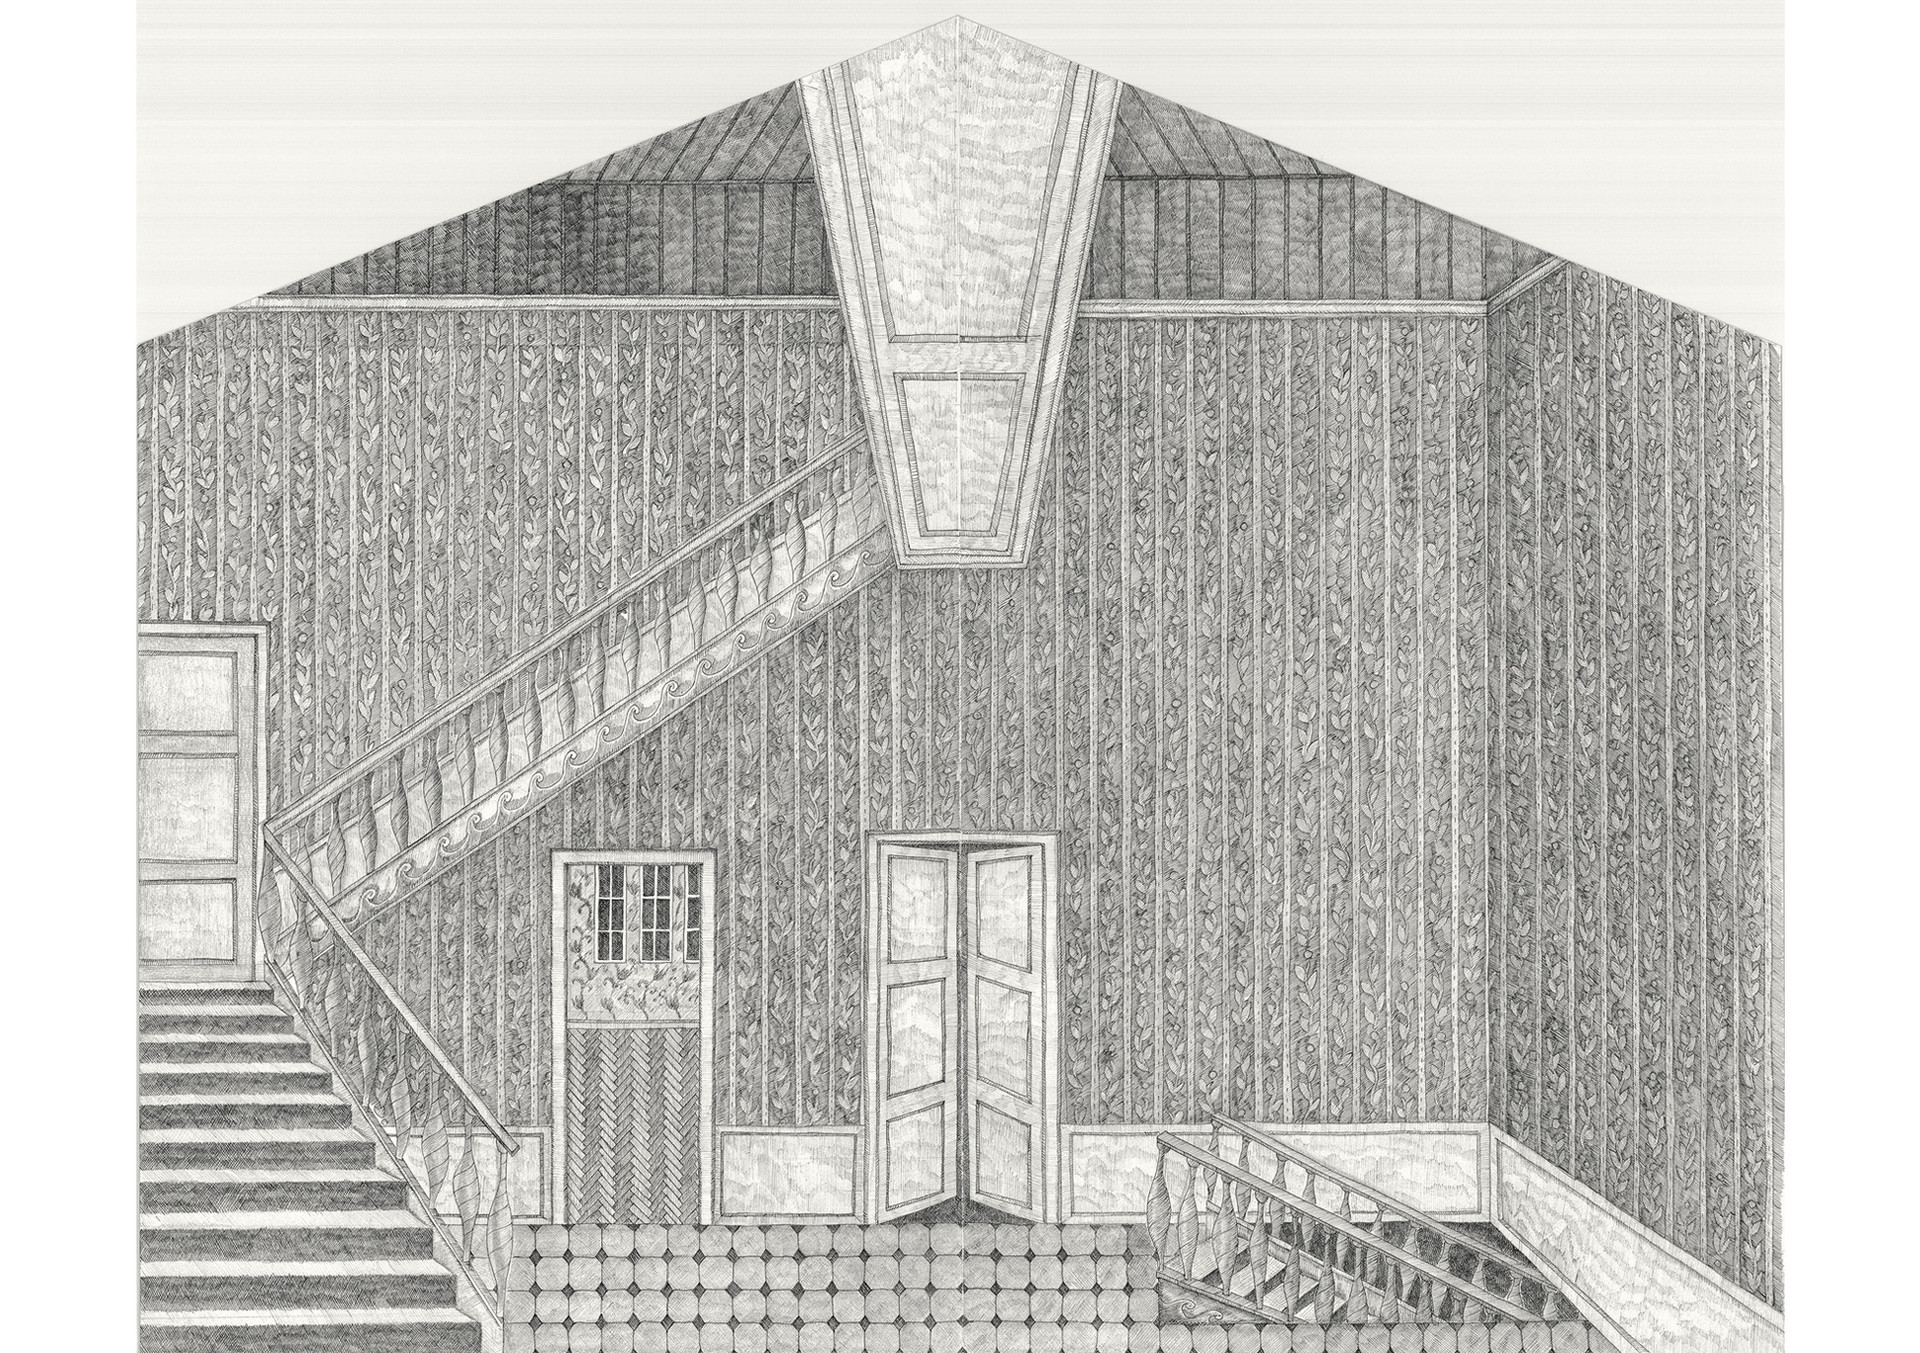 Room with Stairs (Dreaming House), 2015. Ink pen and pencil on paper, 41.5 × 50.5 cm